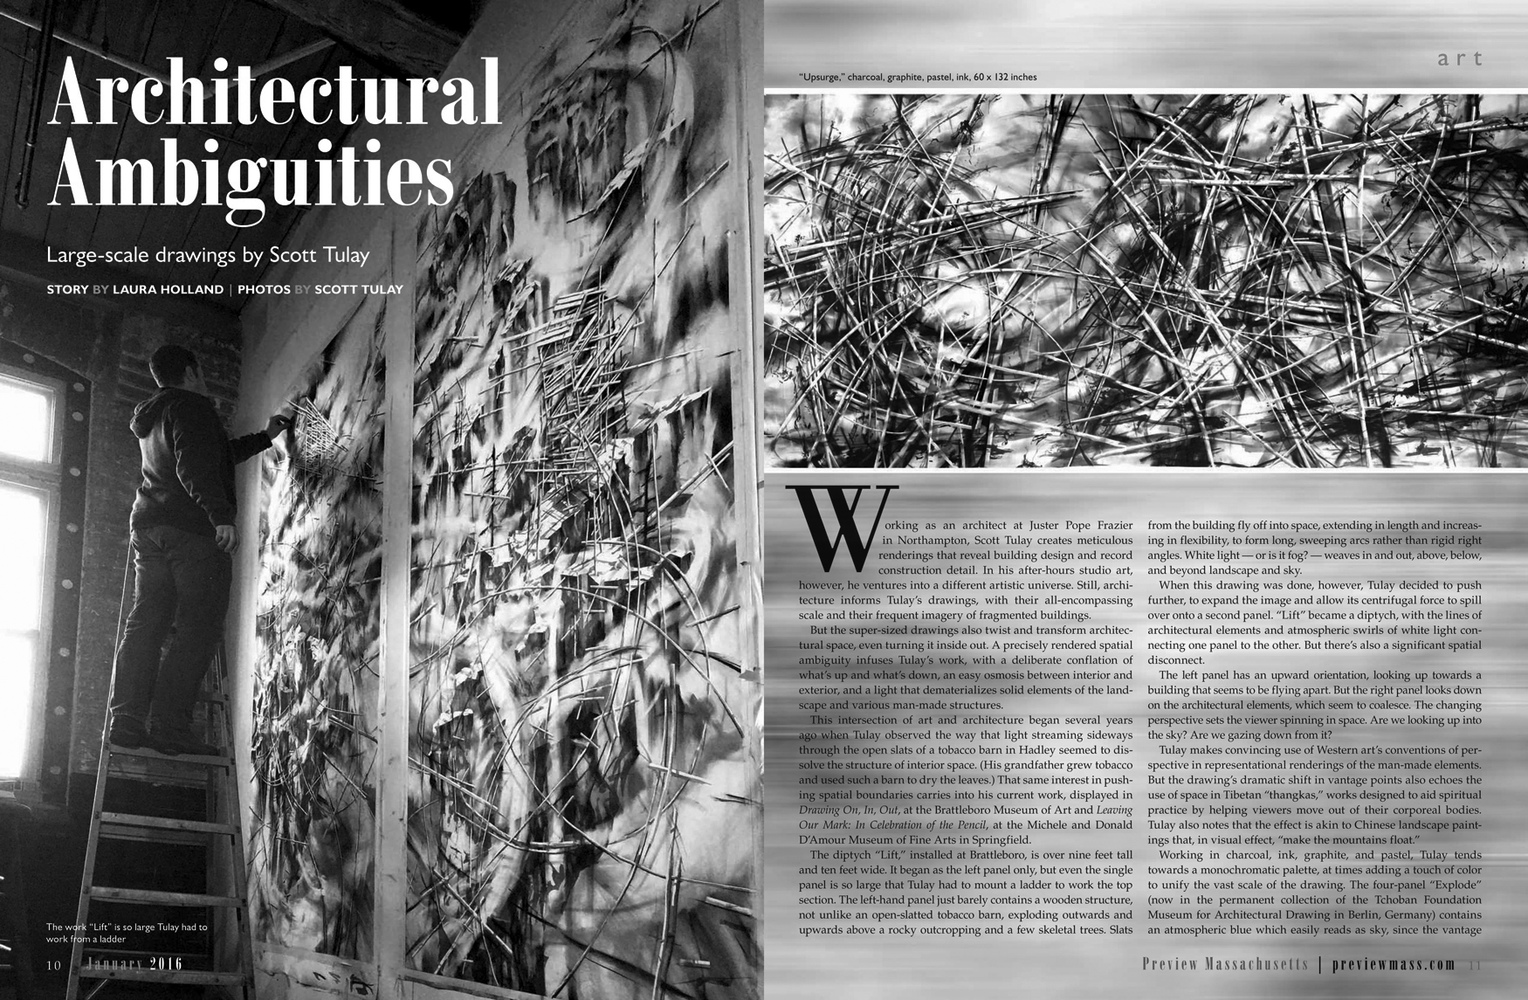 recent drawings Preview Magazine feature